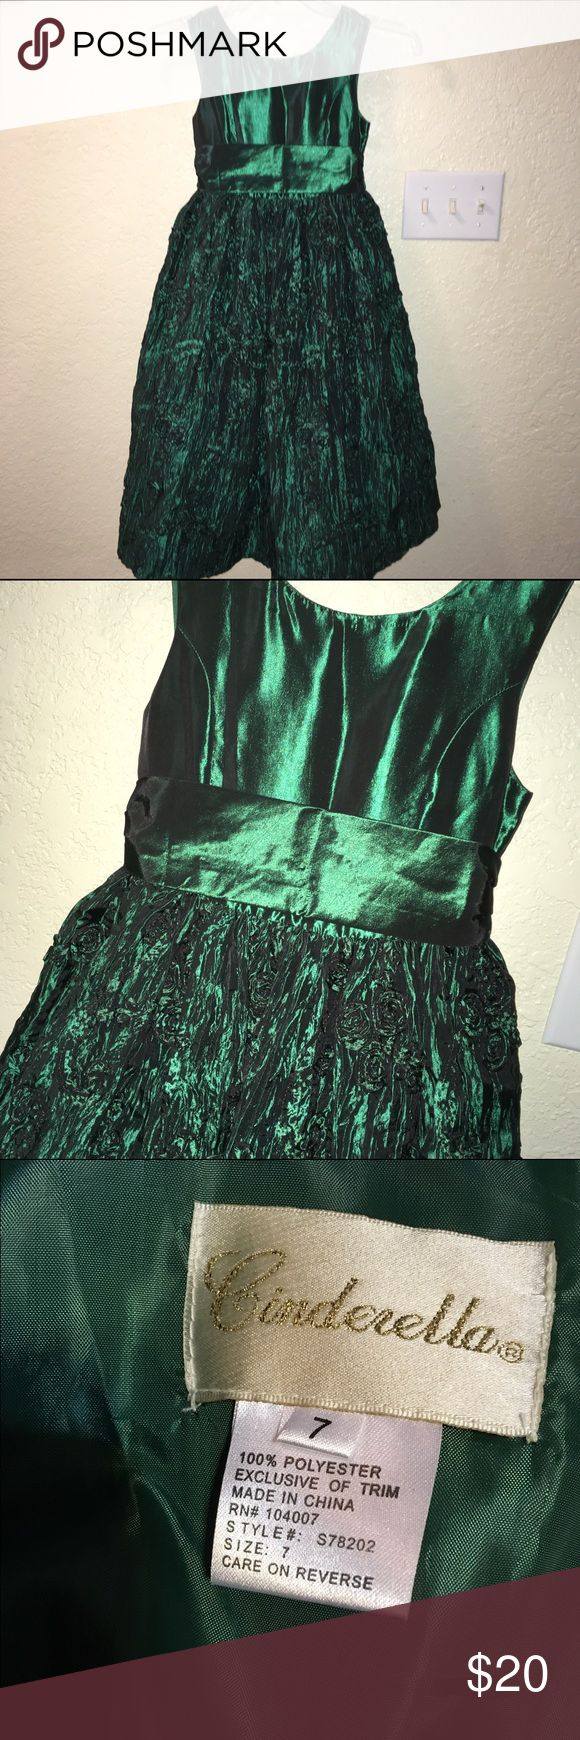 ✨🆕Listing✨ Cinderella Brand Girls Formal Dress Beautiful green colored dress great for the holidays, church or formal event. This dress has been worn a 1-2 times and is in good condition. Cinderella Dresses Formal